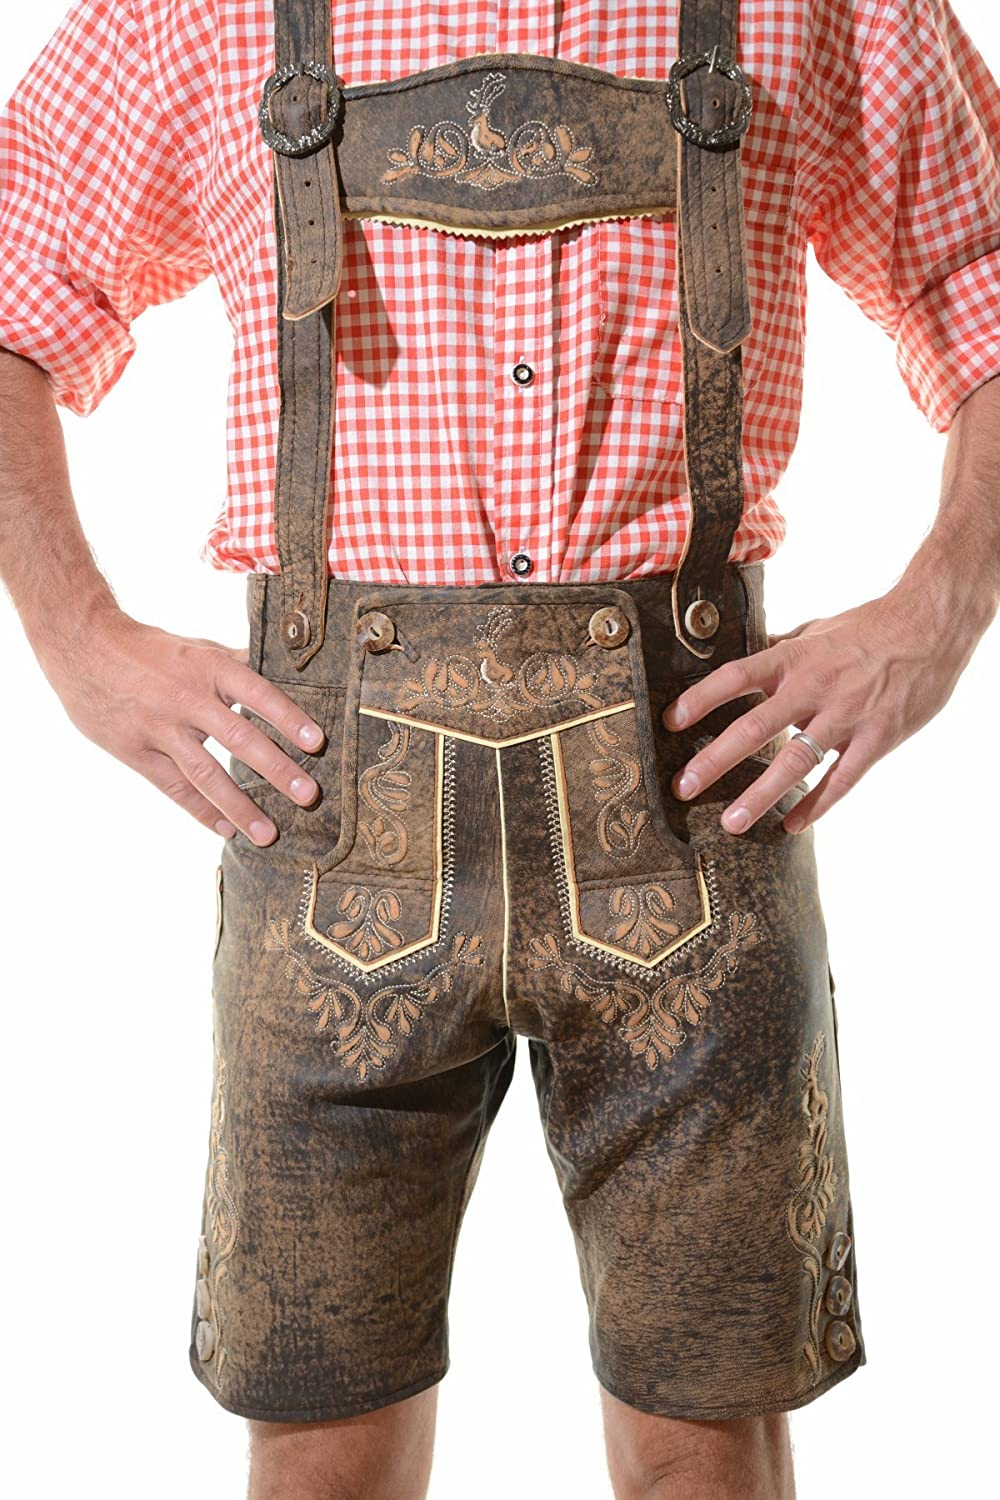 100% Authentic German Bavarian Okoberfest Trachten Lederhosen JODLER